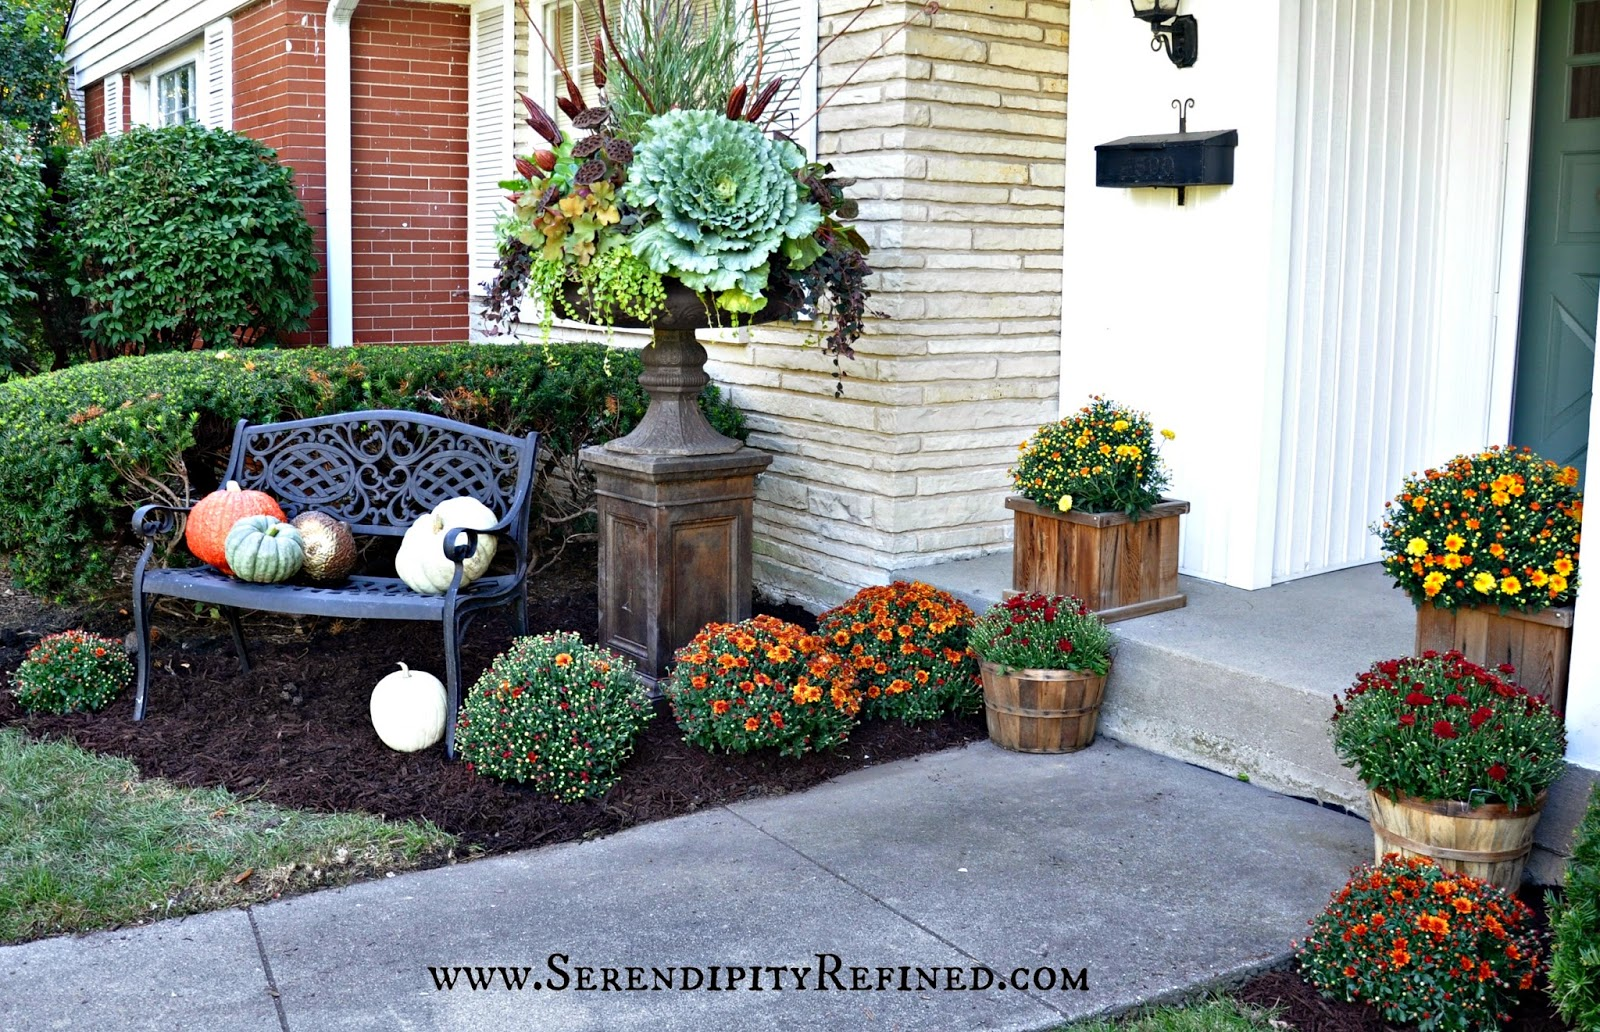 Serendipity Refined Blog: Fall Porch and Urn Decorations